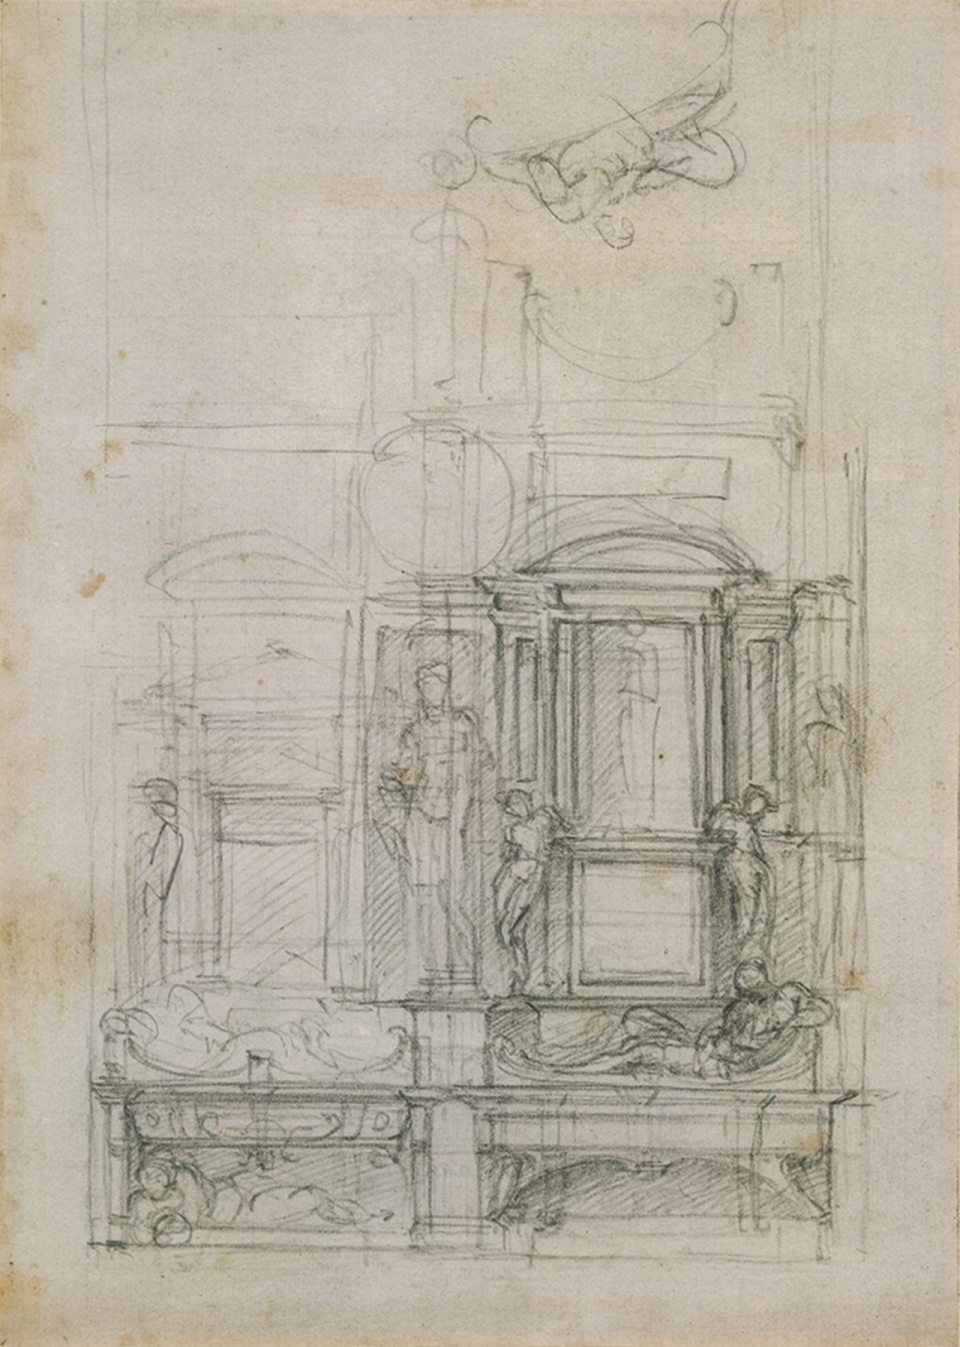 Michelangelo Buonarroti (Italian, 1475–1564). Sketches for the Design for a Double Tomb in the New Sacristy of San Lorenzo. Black chalk.